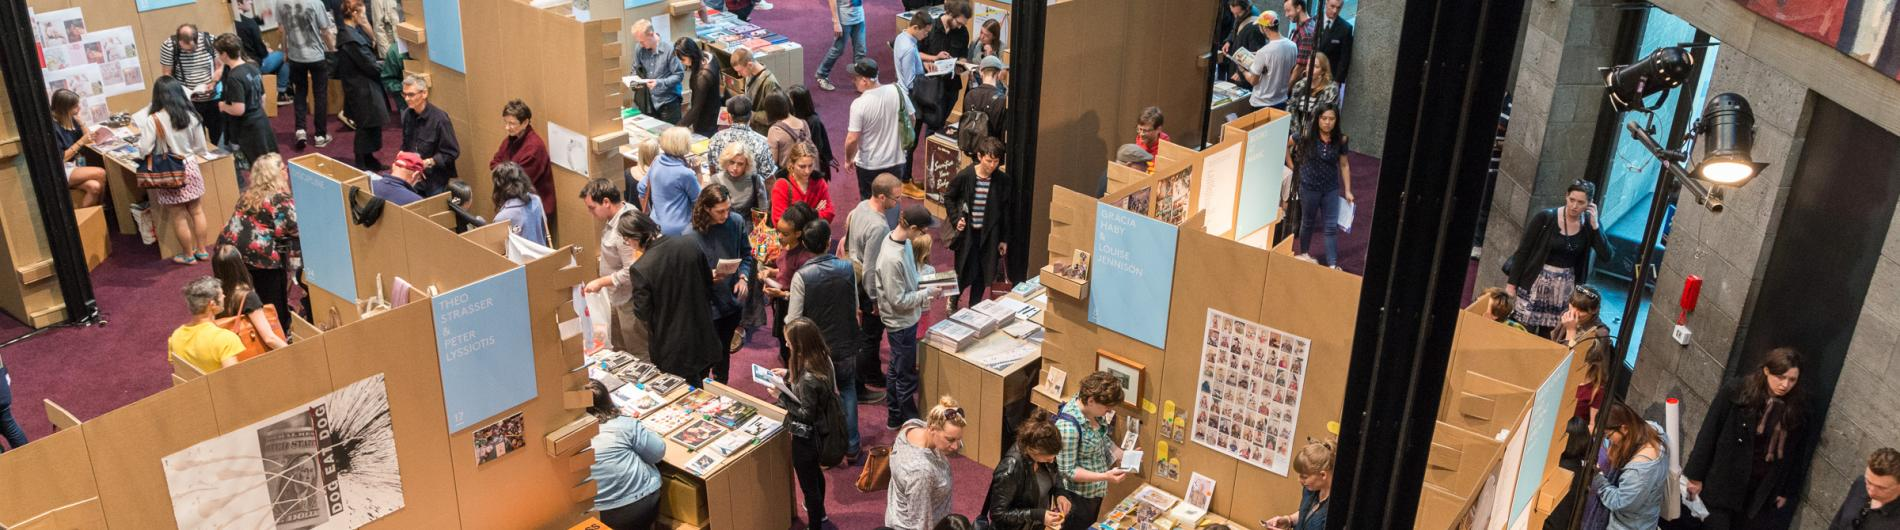 Art Book fair - National Gallery of Victoria